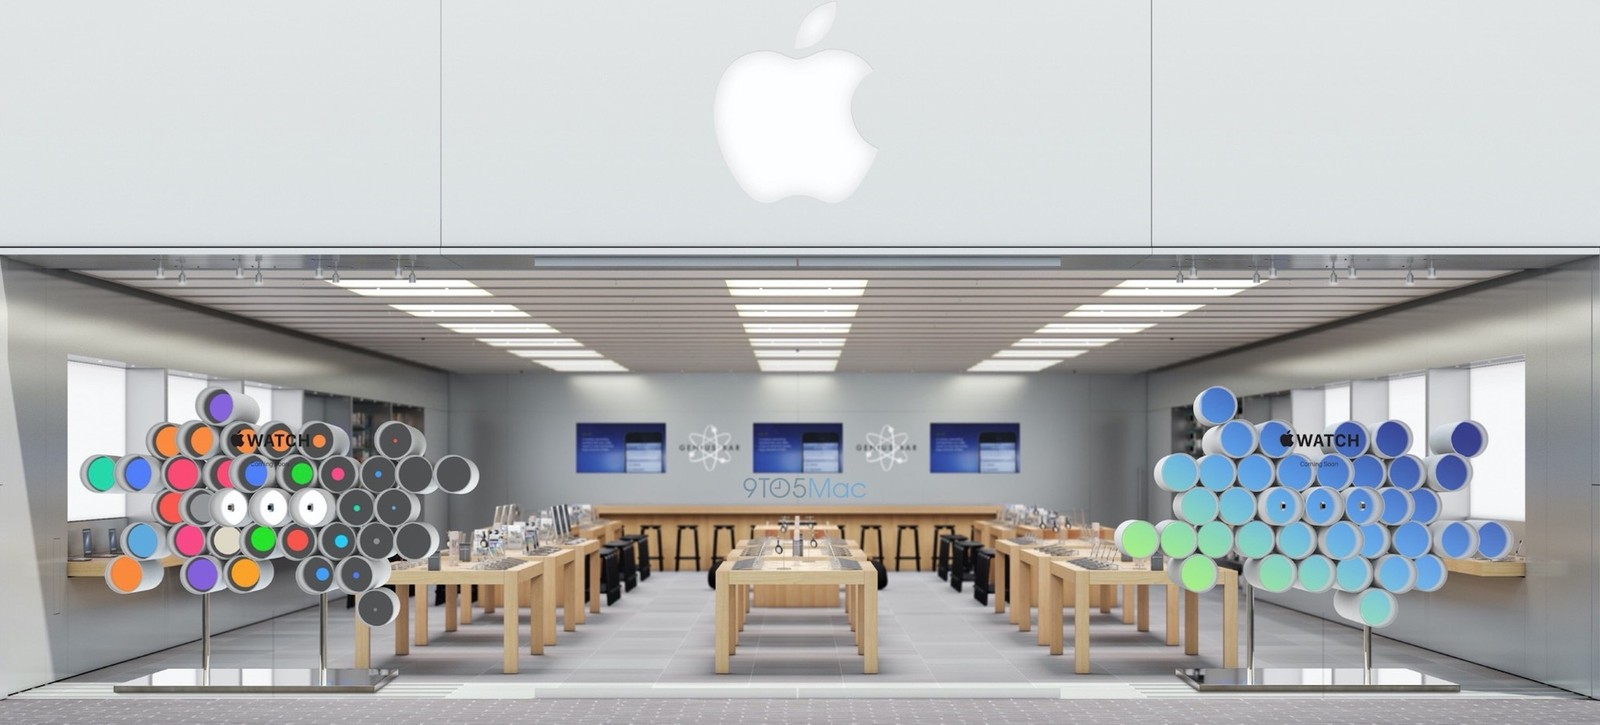 apple-store-watch-render